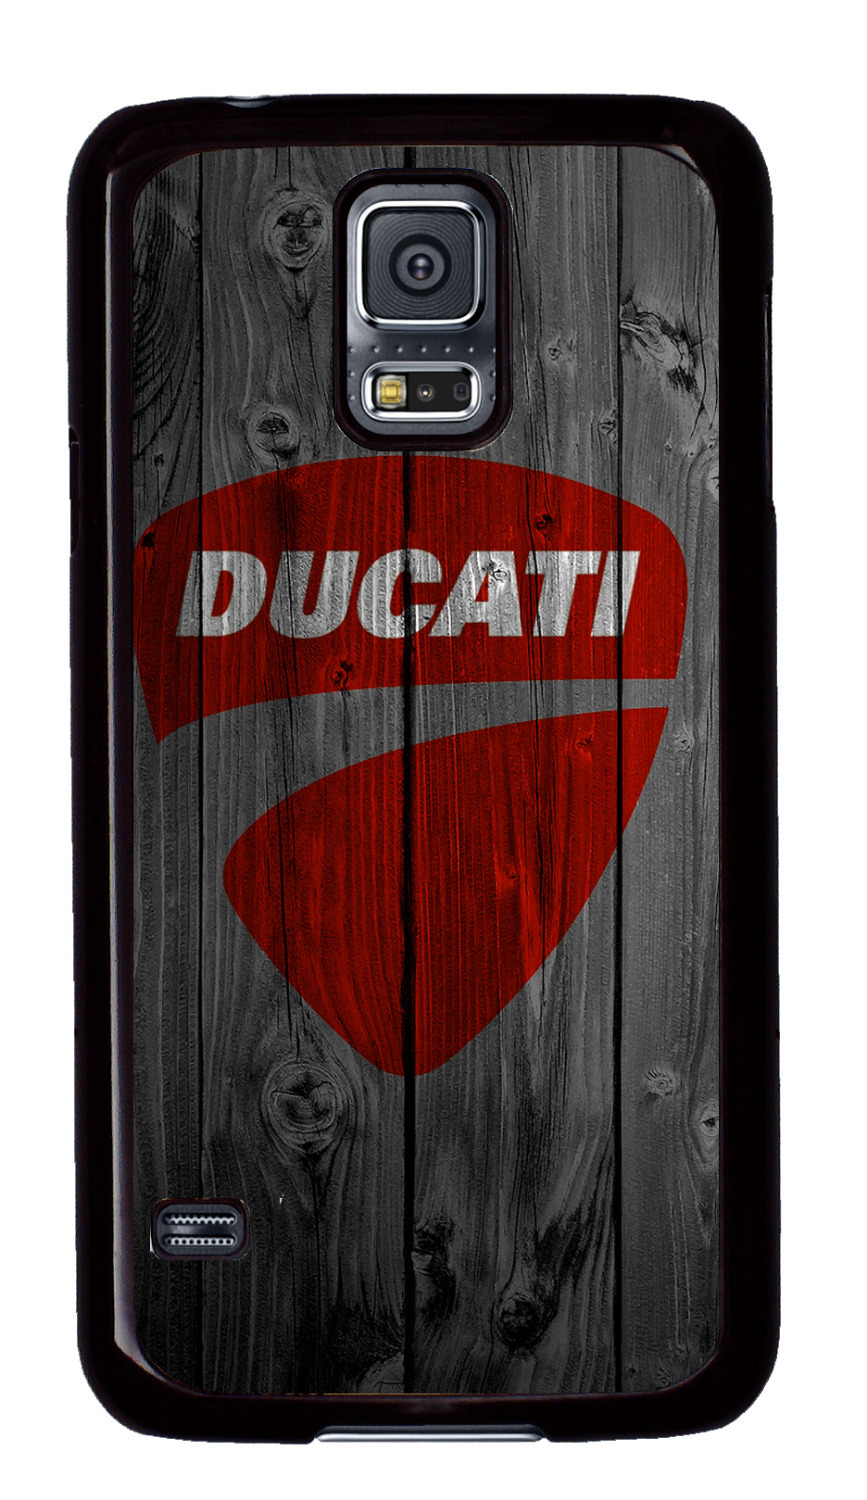 Wood Ducati Car Logo Printed On Samsung Galaxy S5 I9600 Case Cover Back On Aliexpress Com Alibaba Group